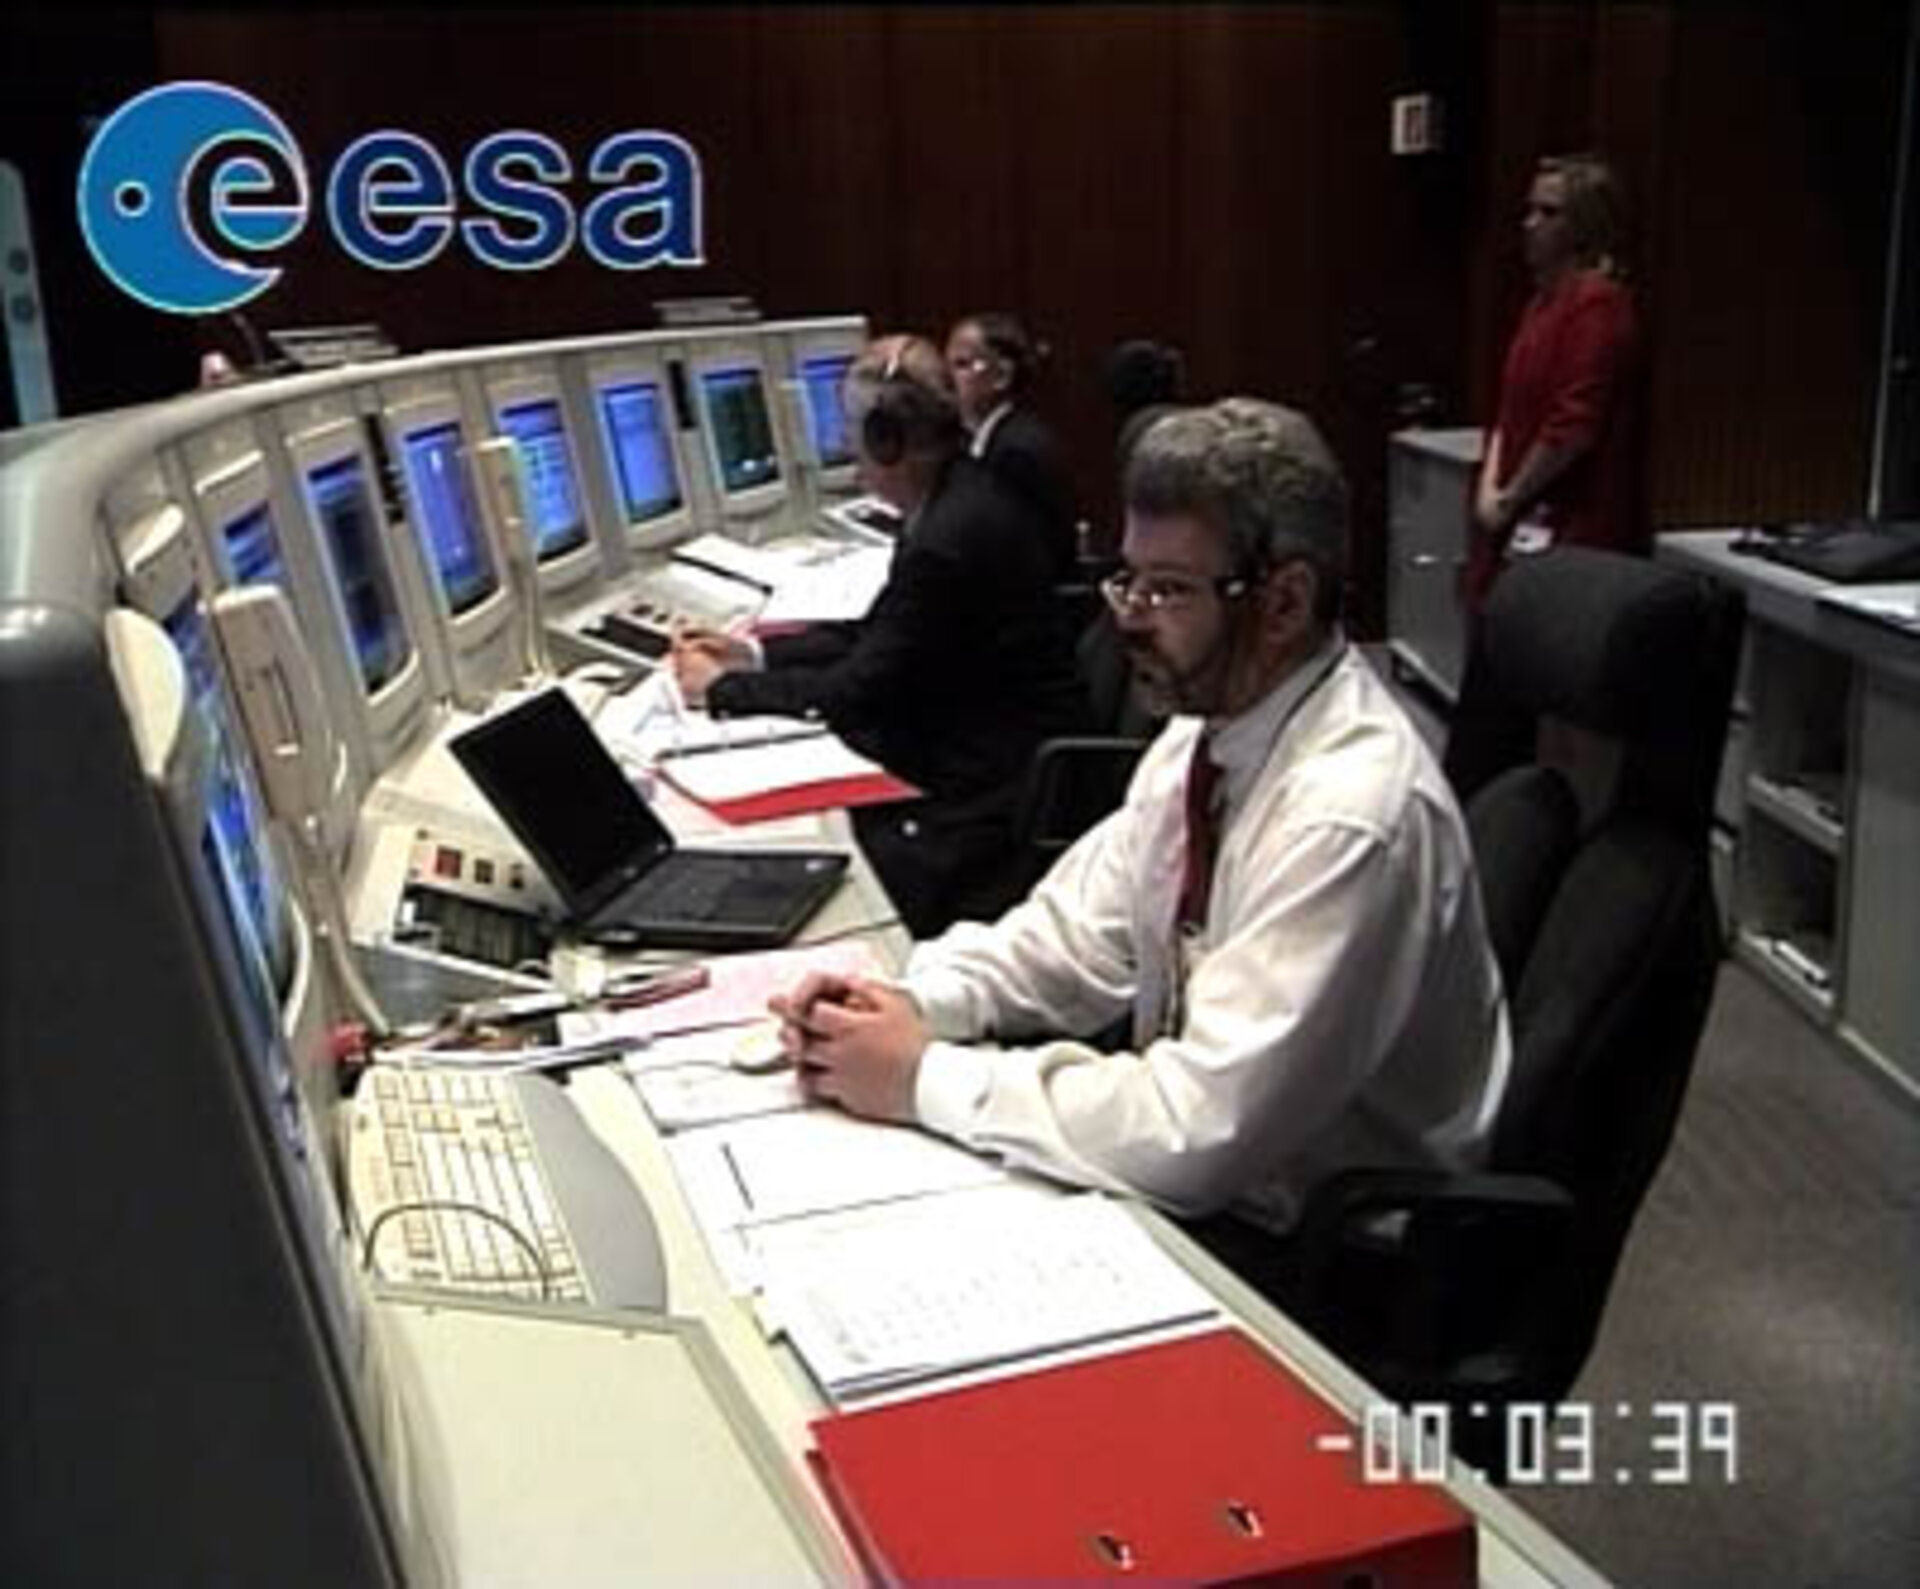 ESA's ground control team are actively rehearsing responses to various situations